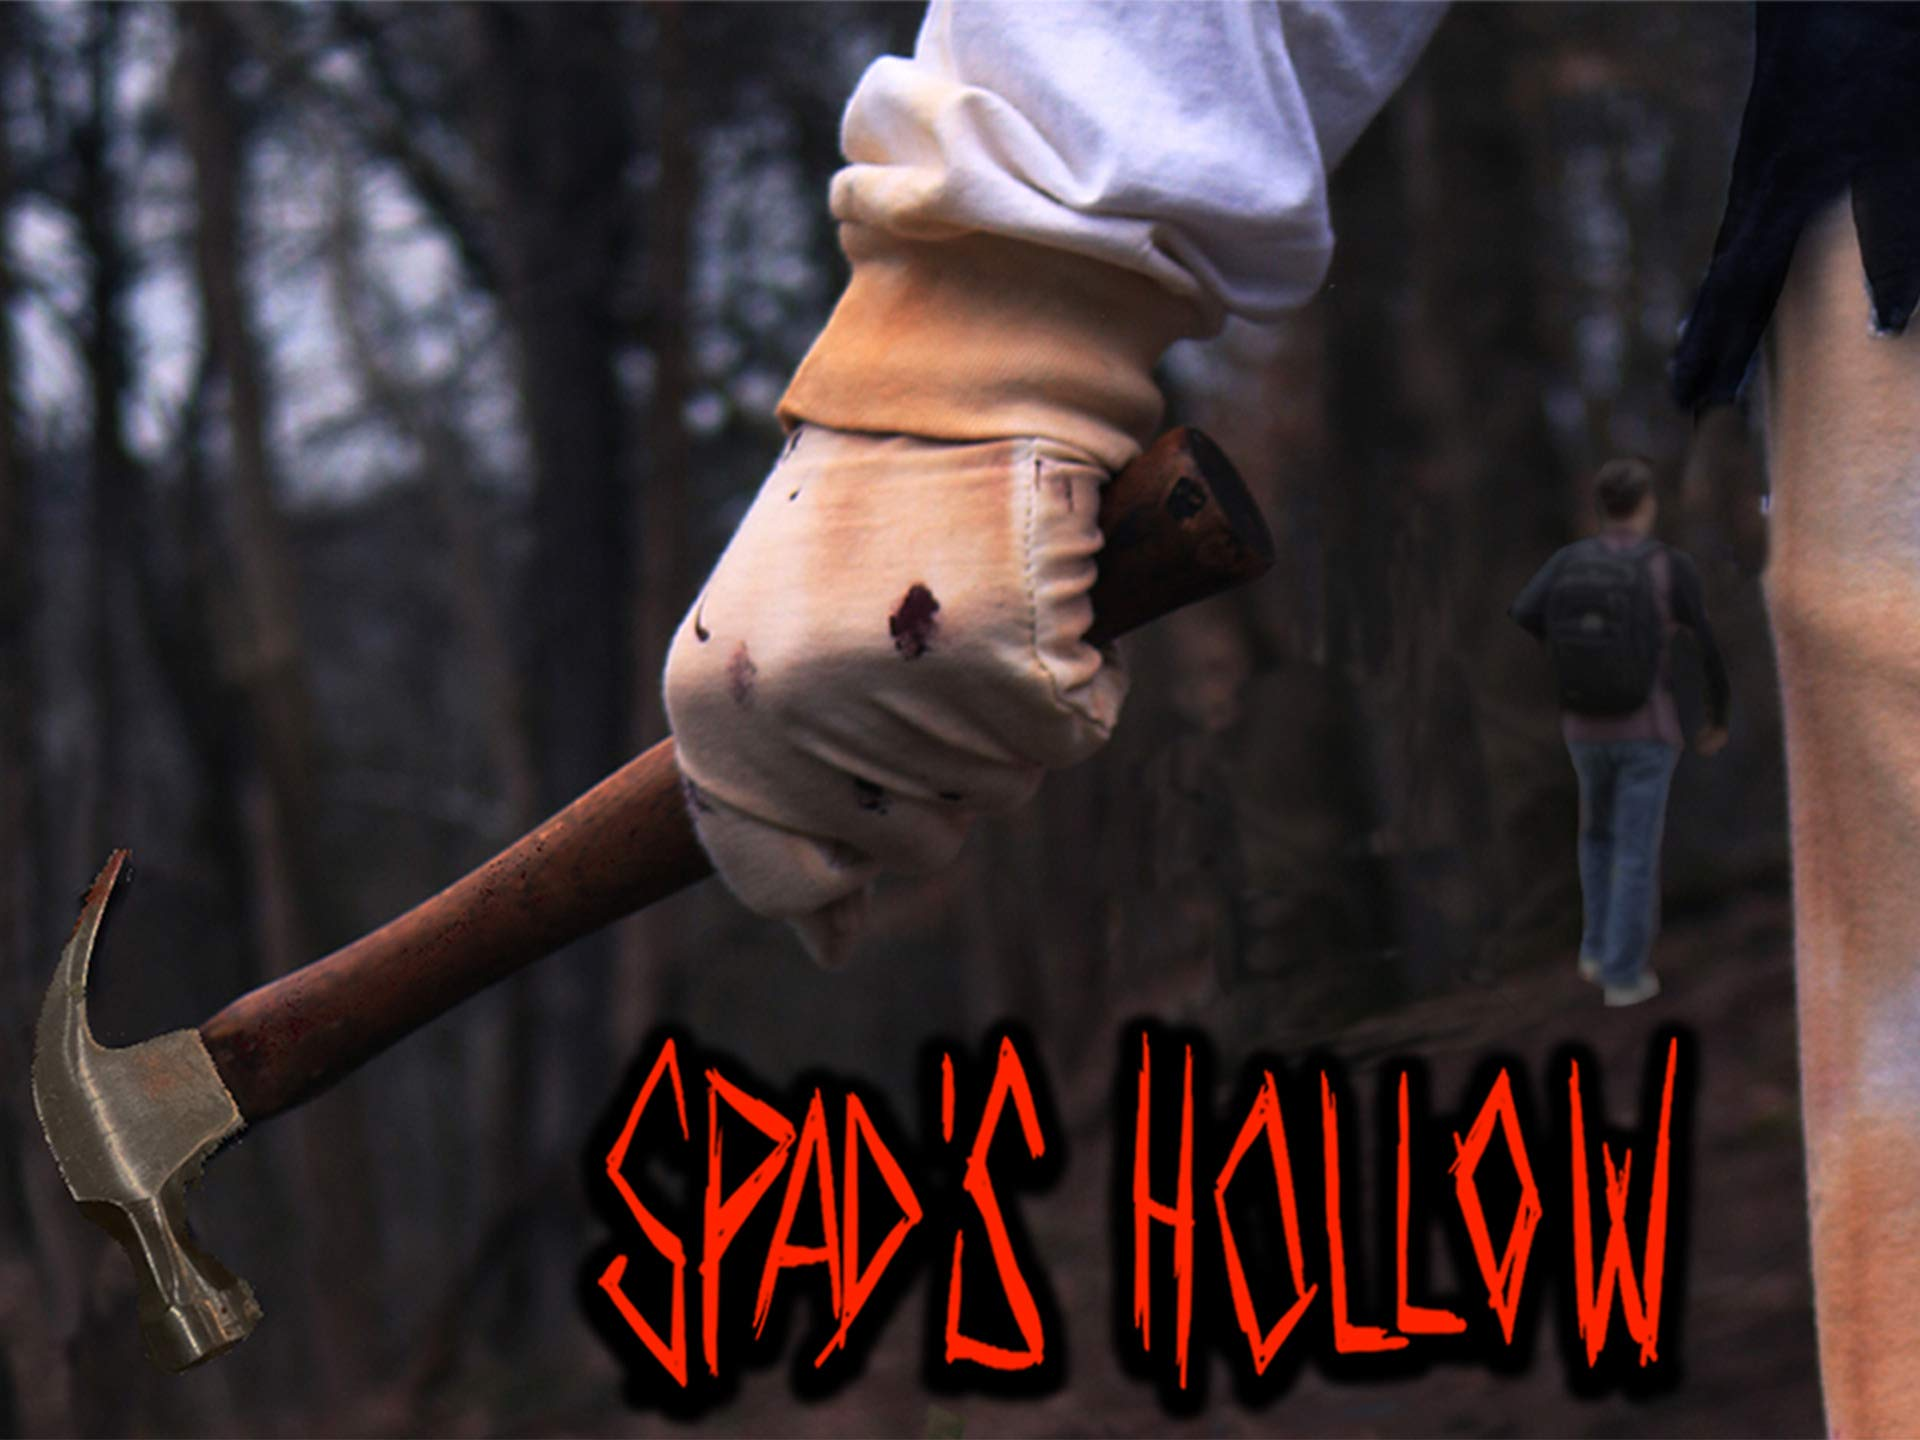 Spad's Hollow